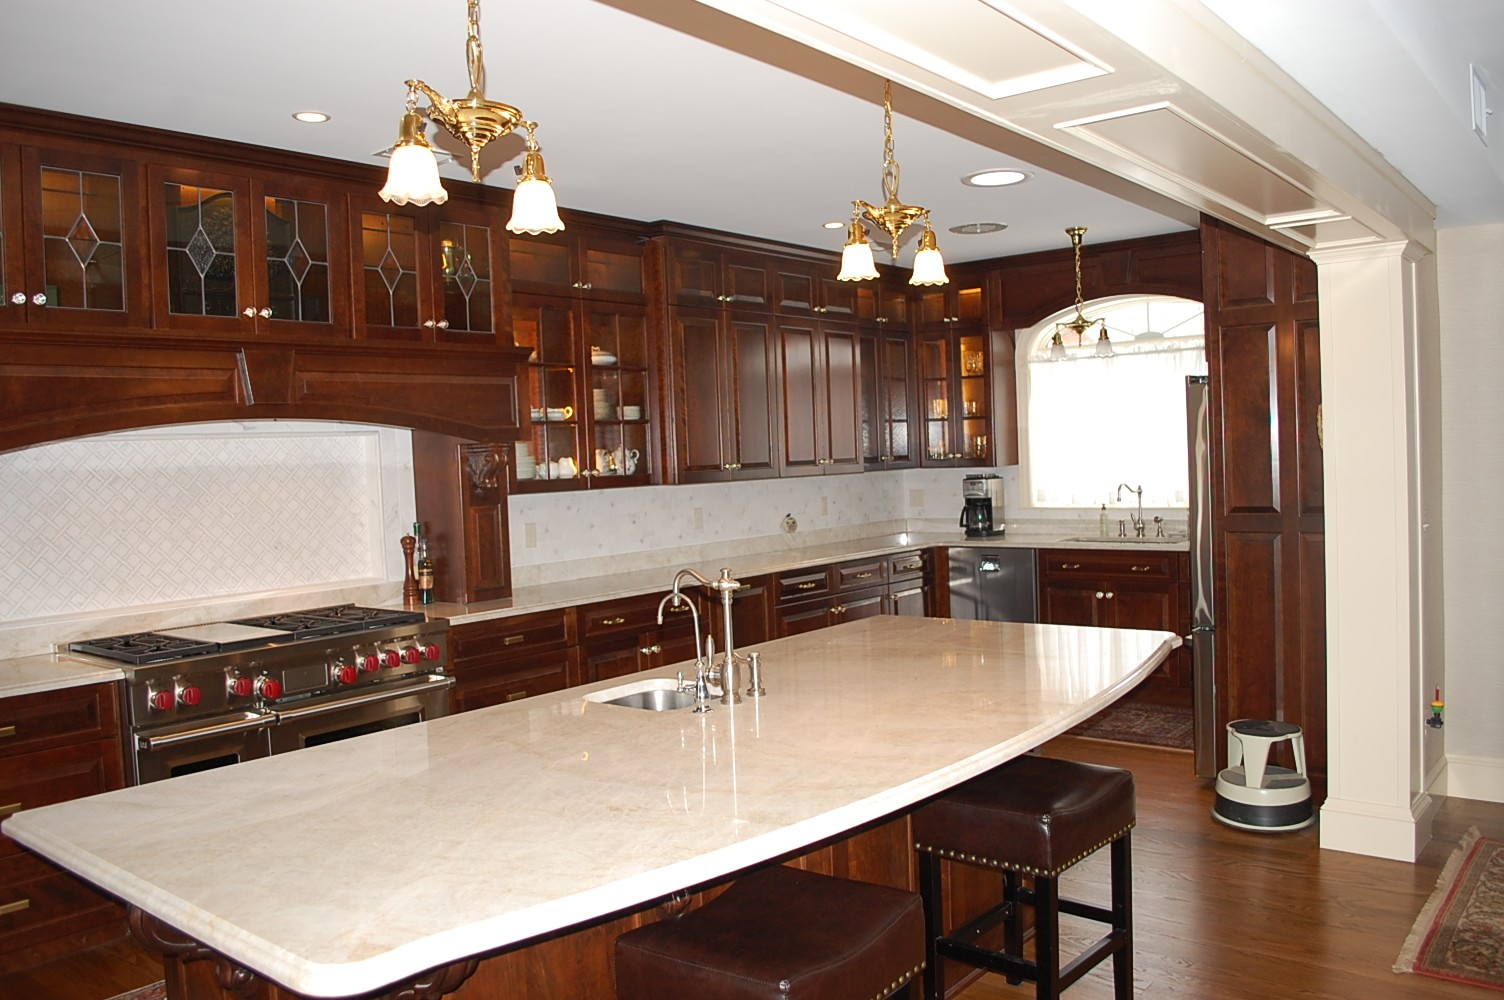 Custom Kitchen renovation by Mt. Tabor Builders in Hagerstown, MD